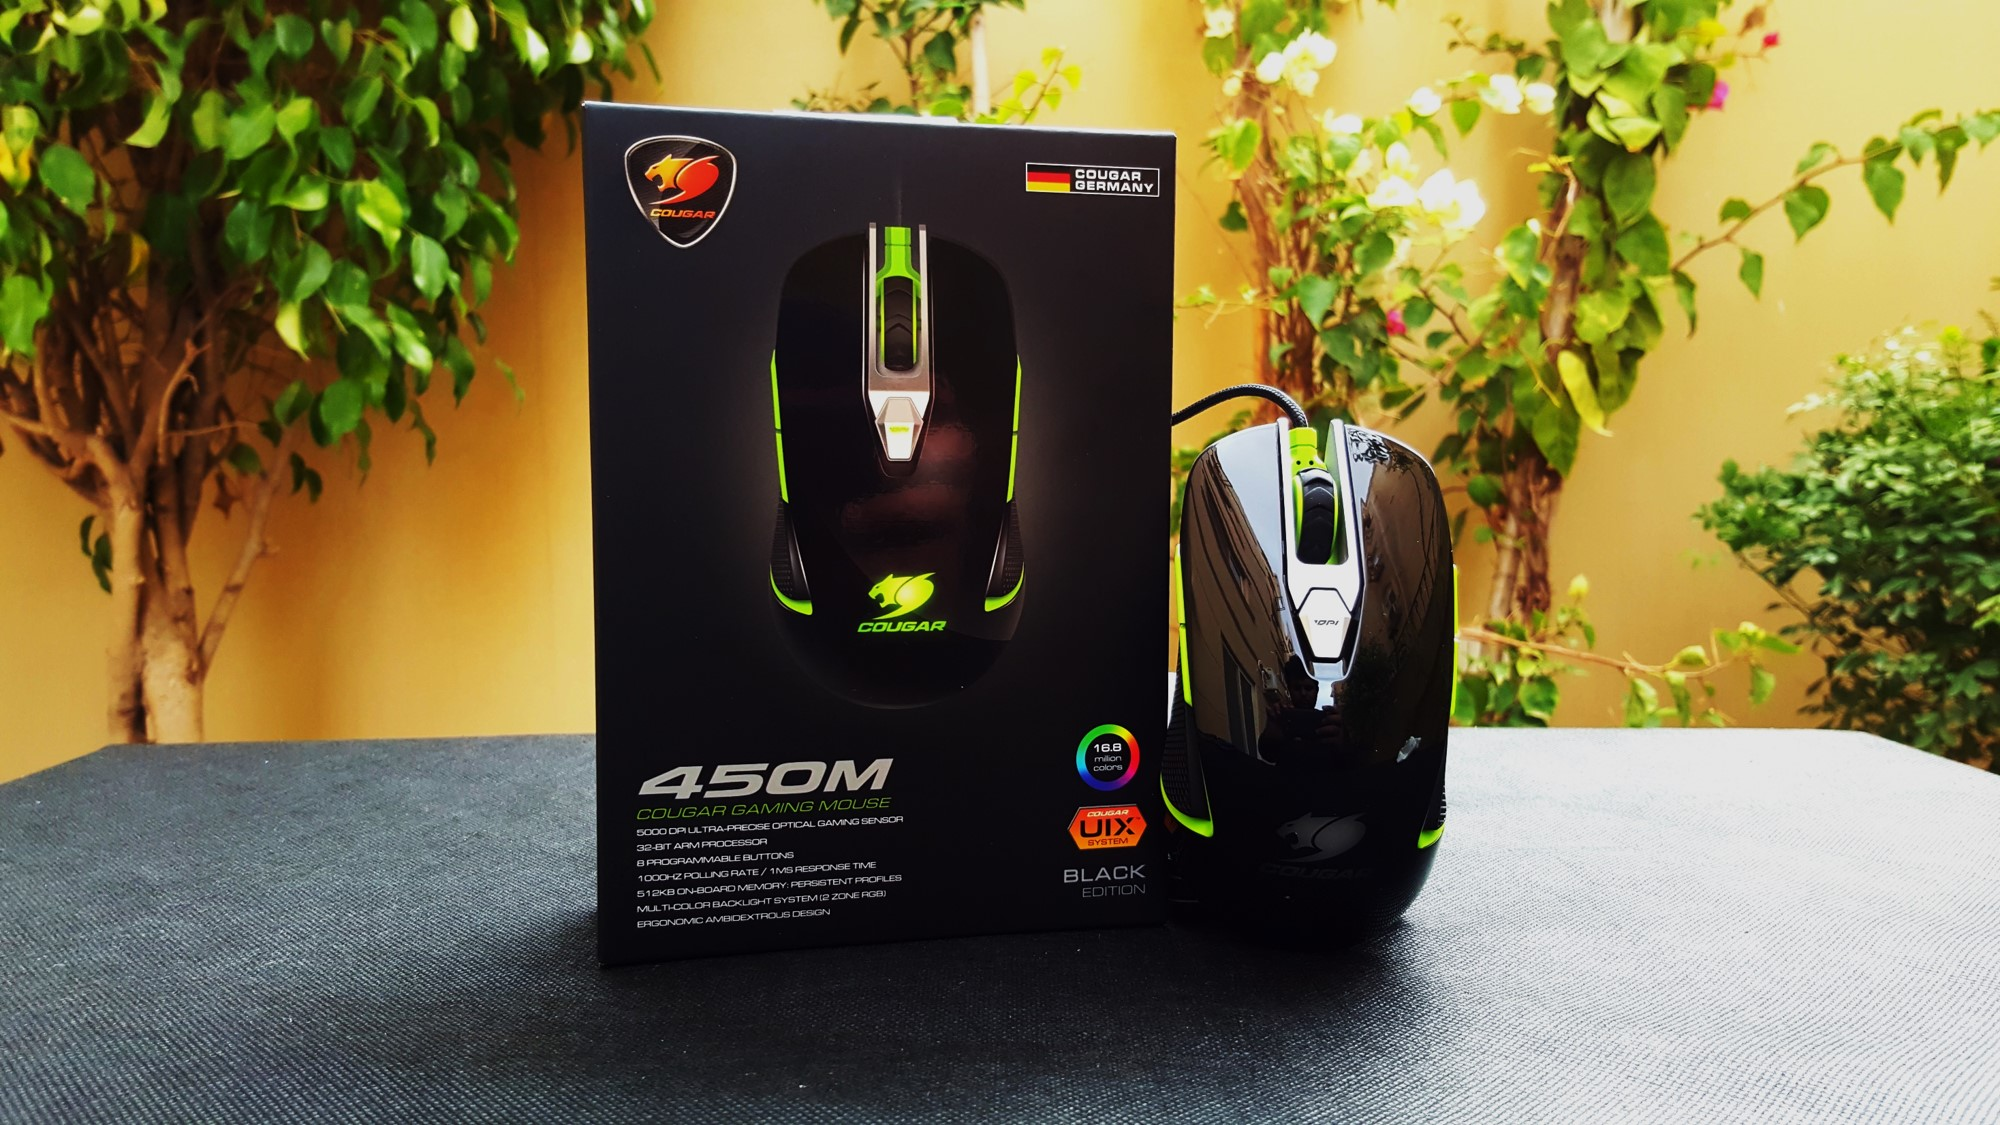 0-Couger 450M Black Edition Gaming Mouse Cover